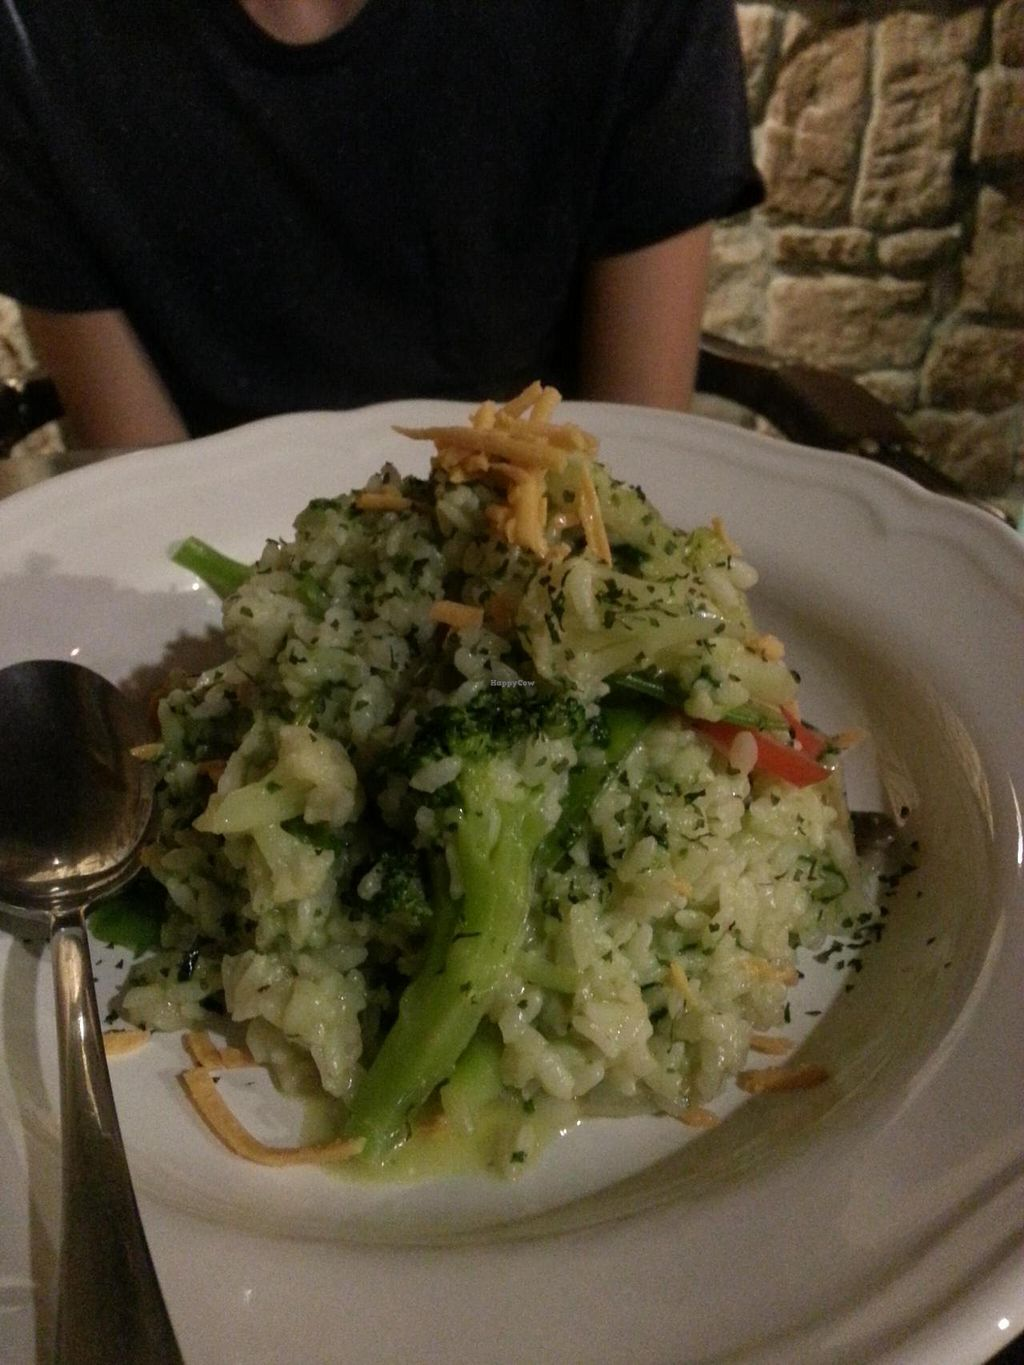 "Photo of Bluesomeone's Vegan Cafe  by <a href=""/members/profile/Nikki1801"">Nikki1801</a> <br/>Risotto <br/> March 13, 2015  - <a href='/contact/abuse/image/52242/95623'>Report</a>"